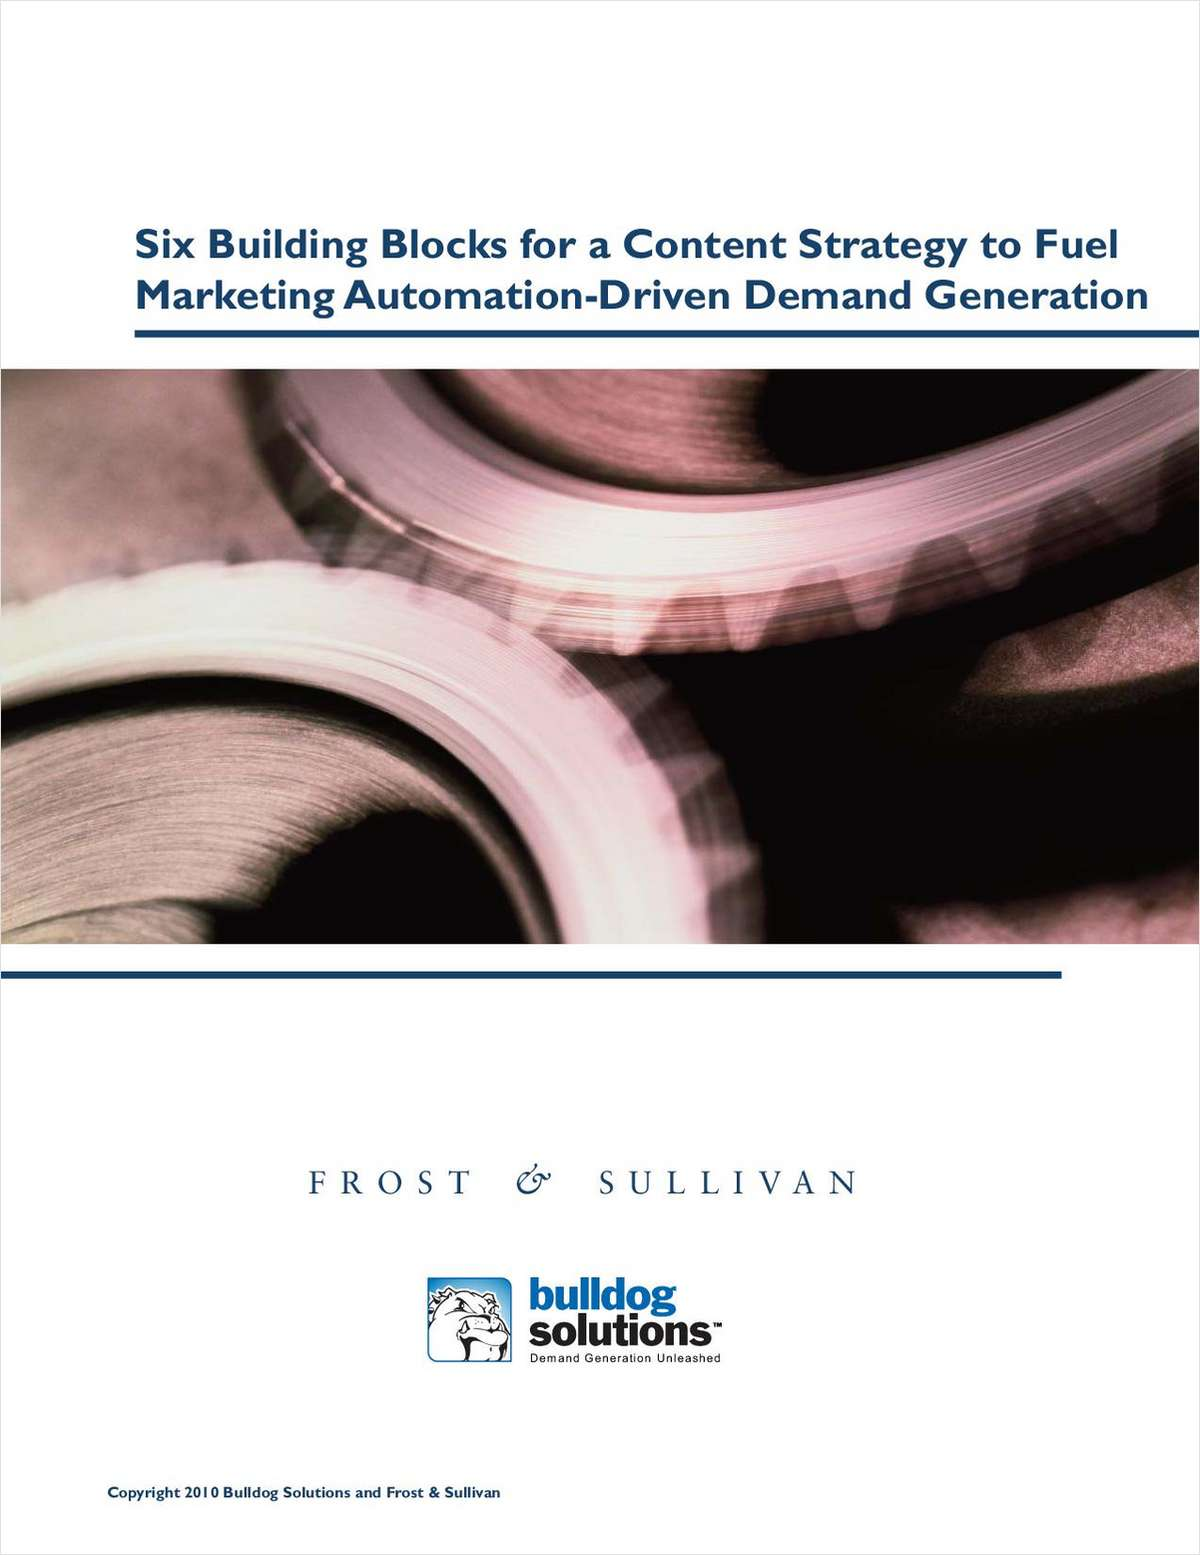 A Content Strategy for Marketing Automation-Driven Demand Generation